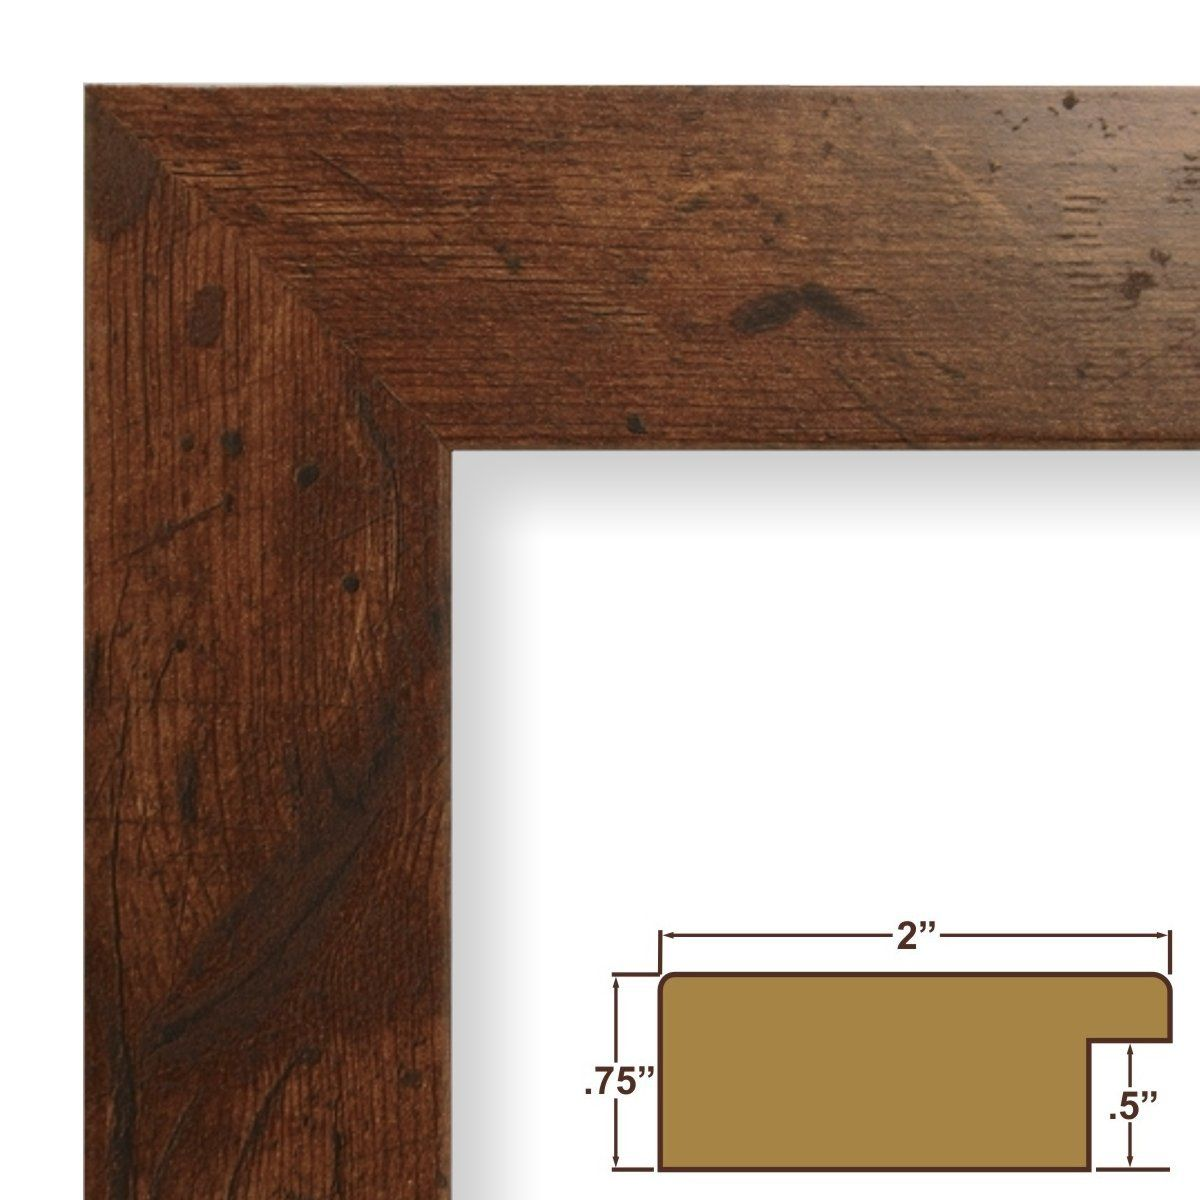 11x17 Poster Frame Smooth Wood Grain Finish 2 Wide Dark Brown Rustic Pine 74004 Poster Contin Craig Frames Custom Picture Frame Rustic Picture Frames